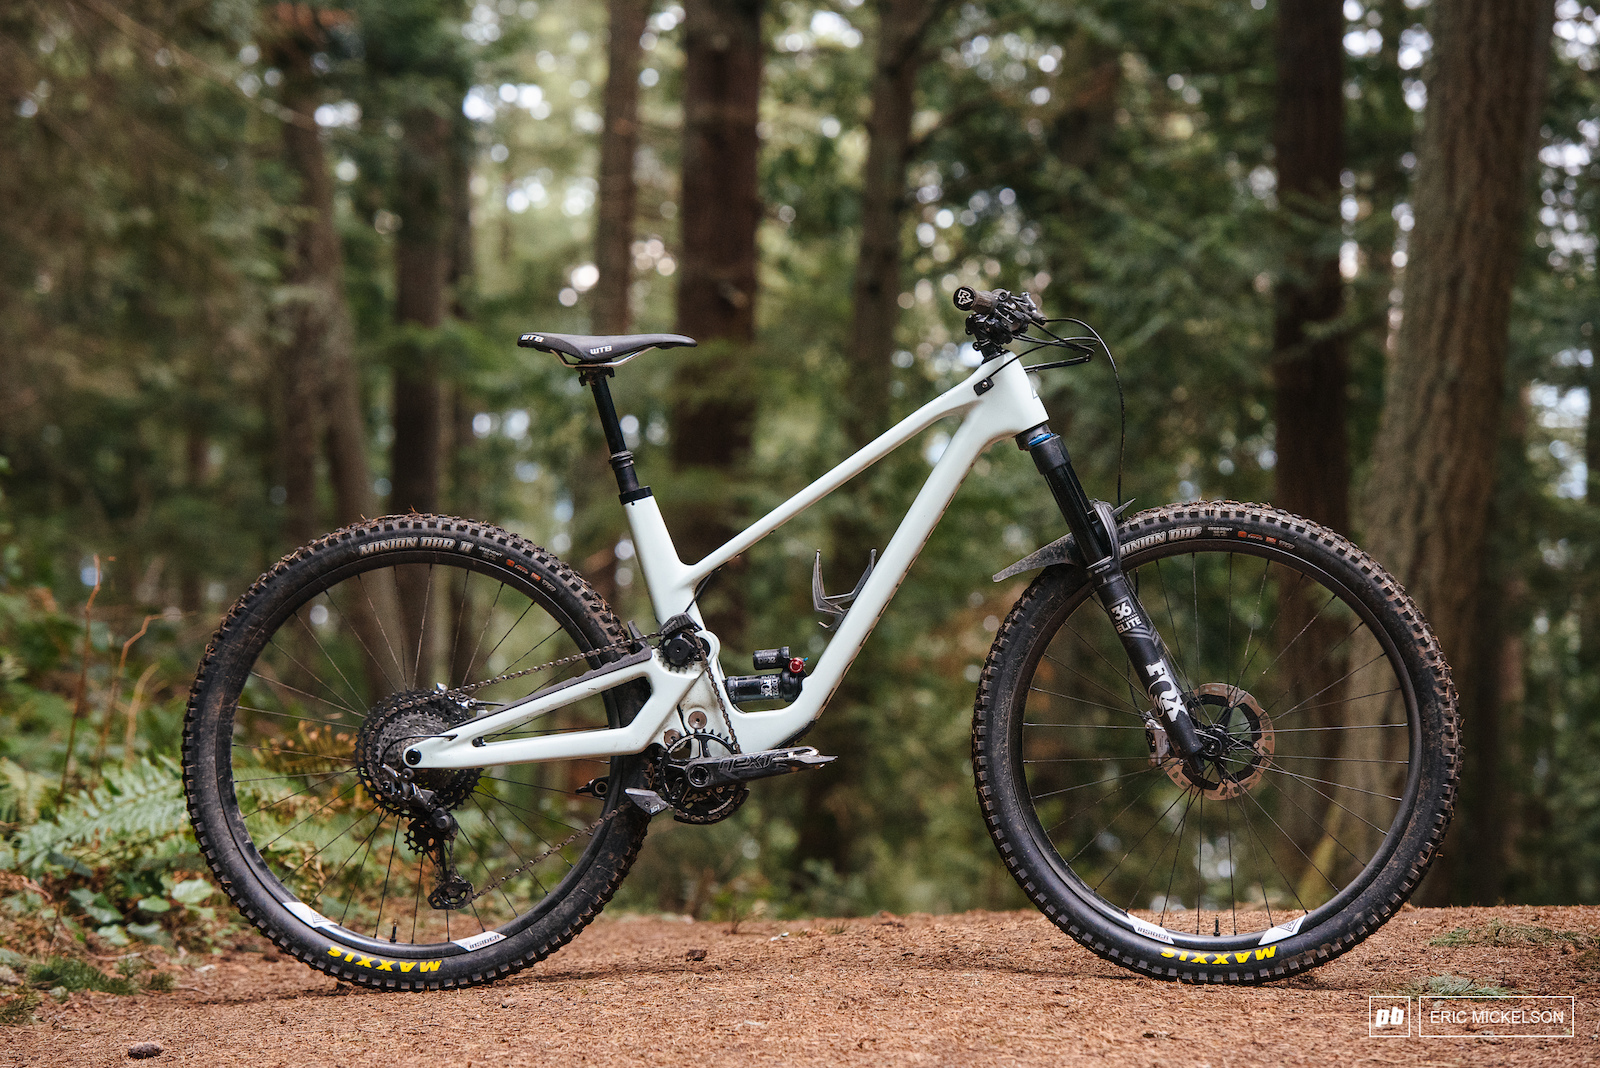 Review: Forbidden's New High Pivot Trail Bike - the 2019 Druid